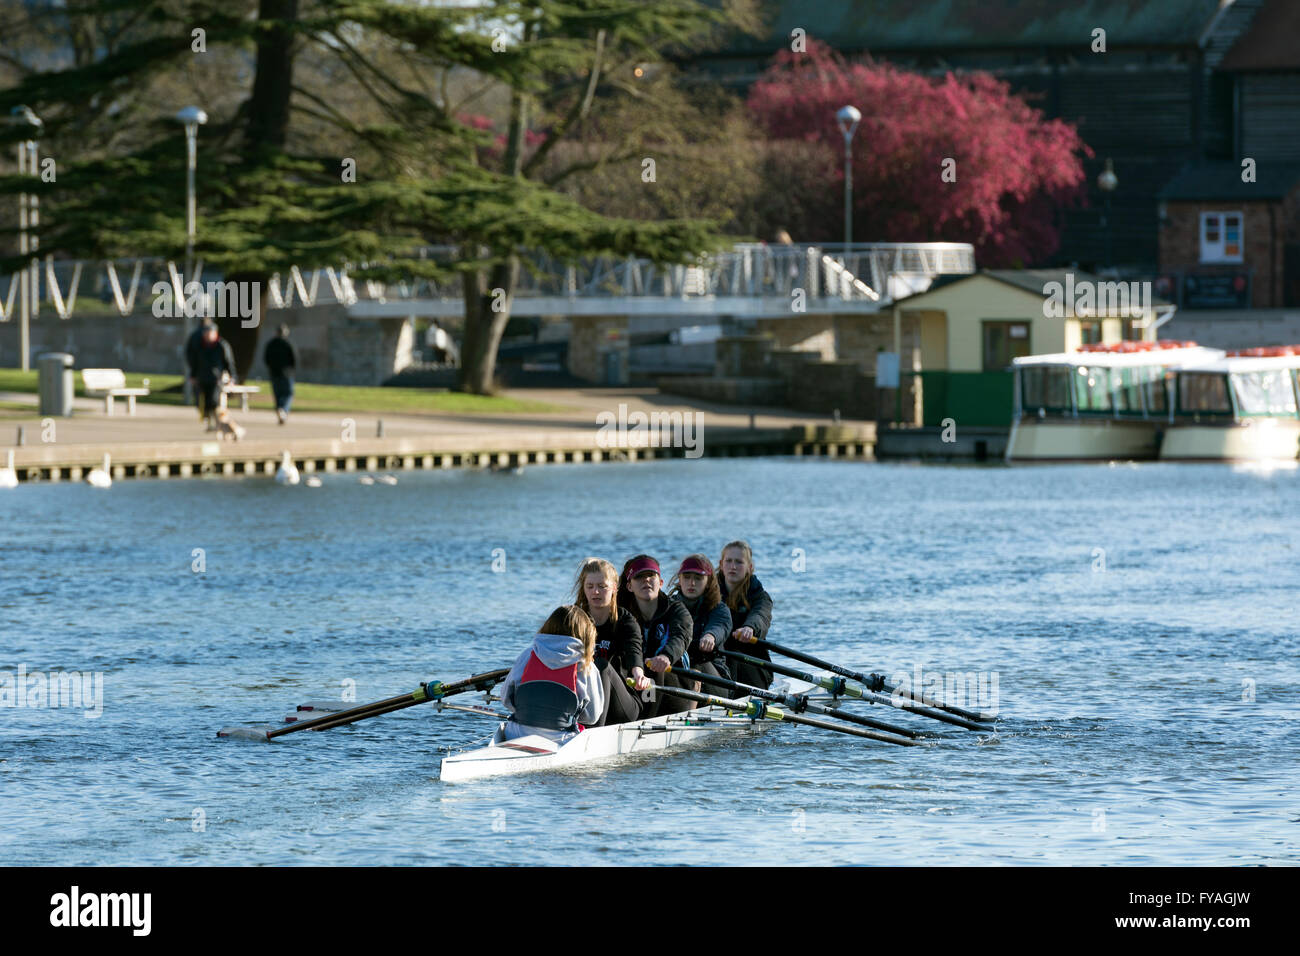 A women`s coxed four rowers training on the River Avon, Stratford-upon-Avon, UK - Stock Image